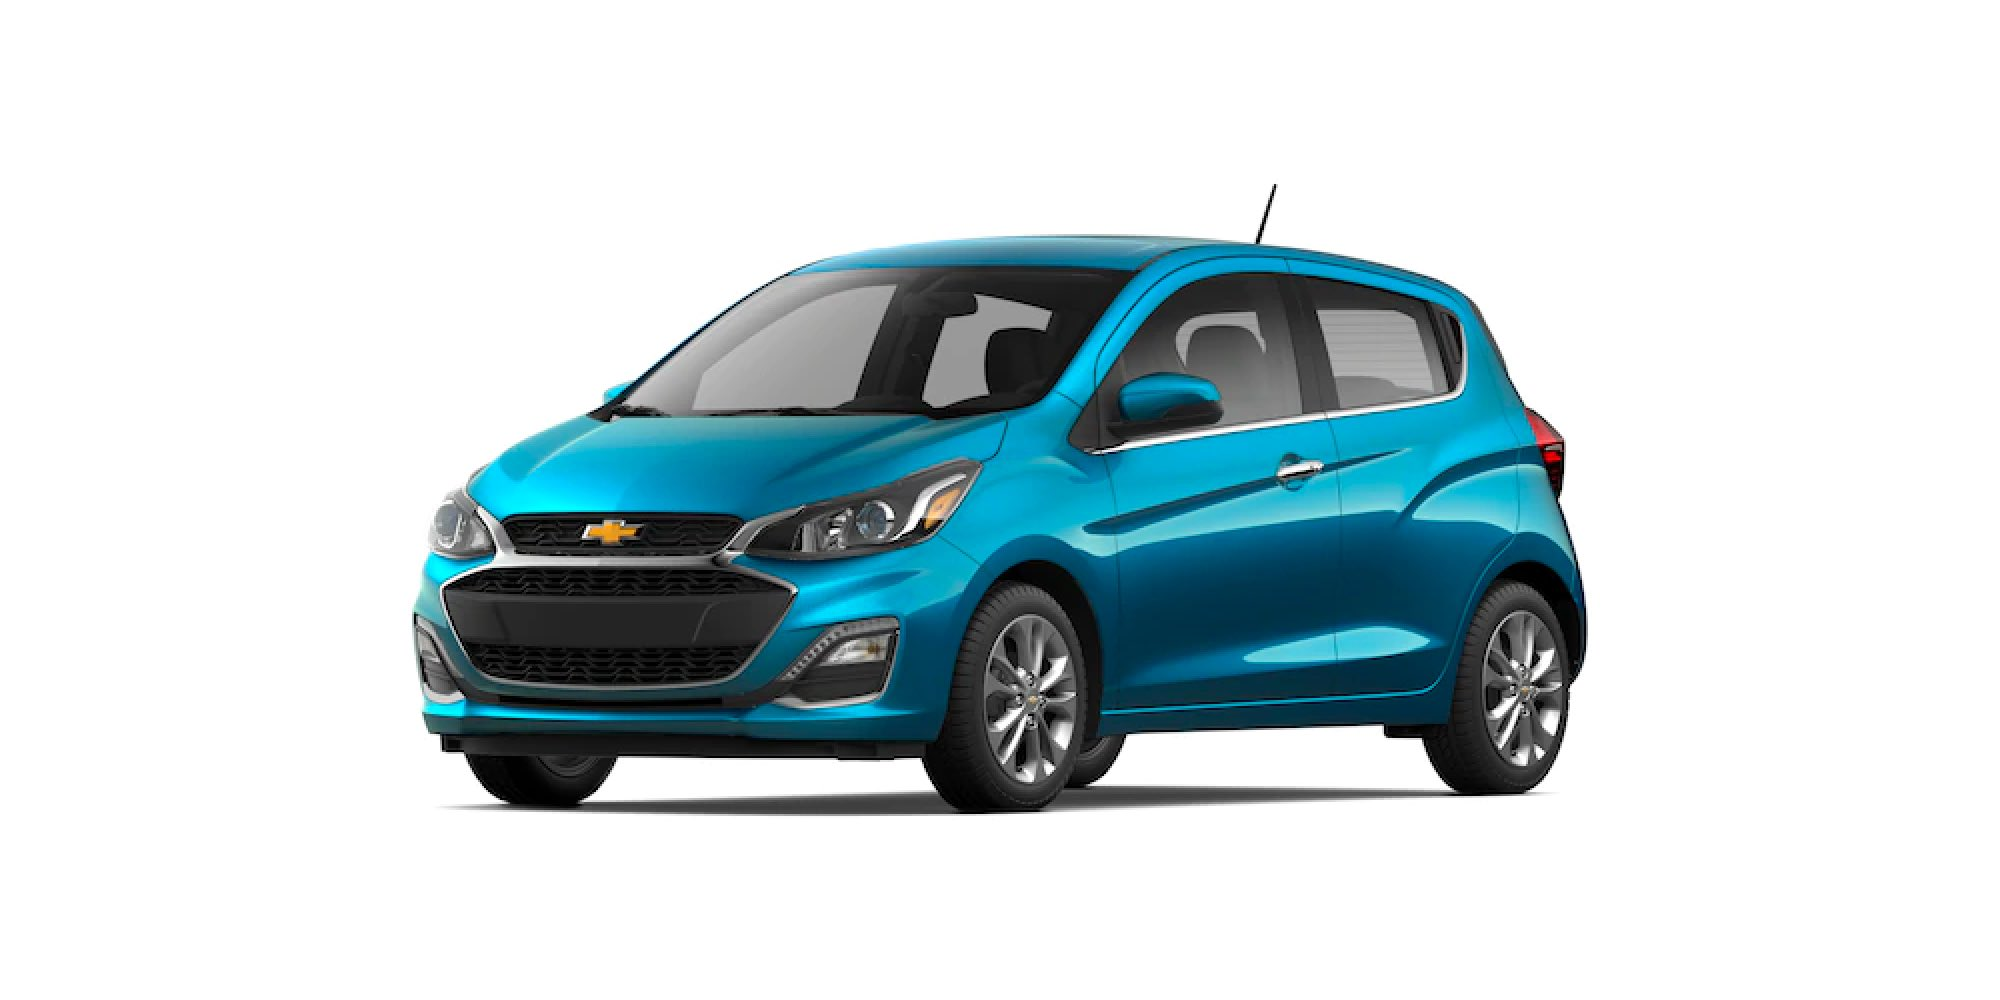 2021 Chevy Spark in Caribbean Blue